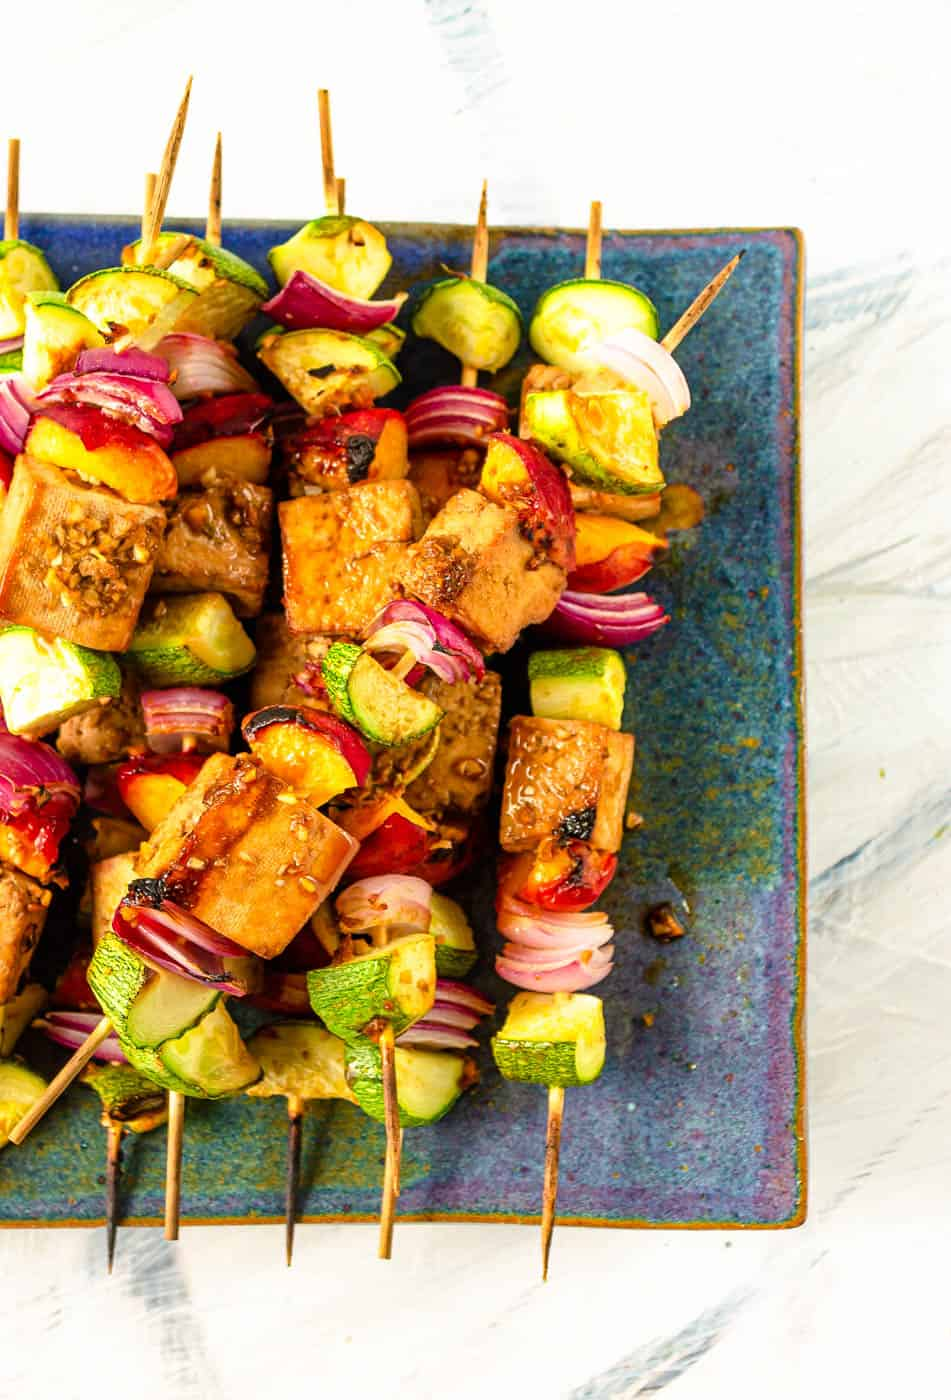 finished tofu skewers on a blue plate